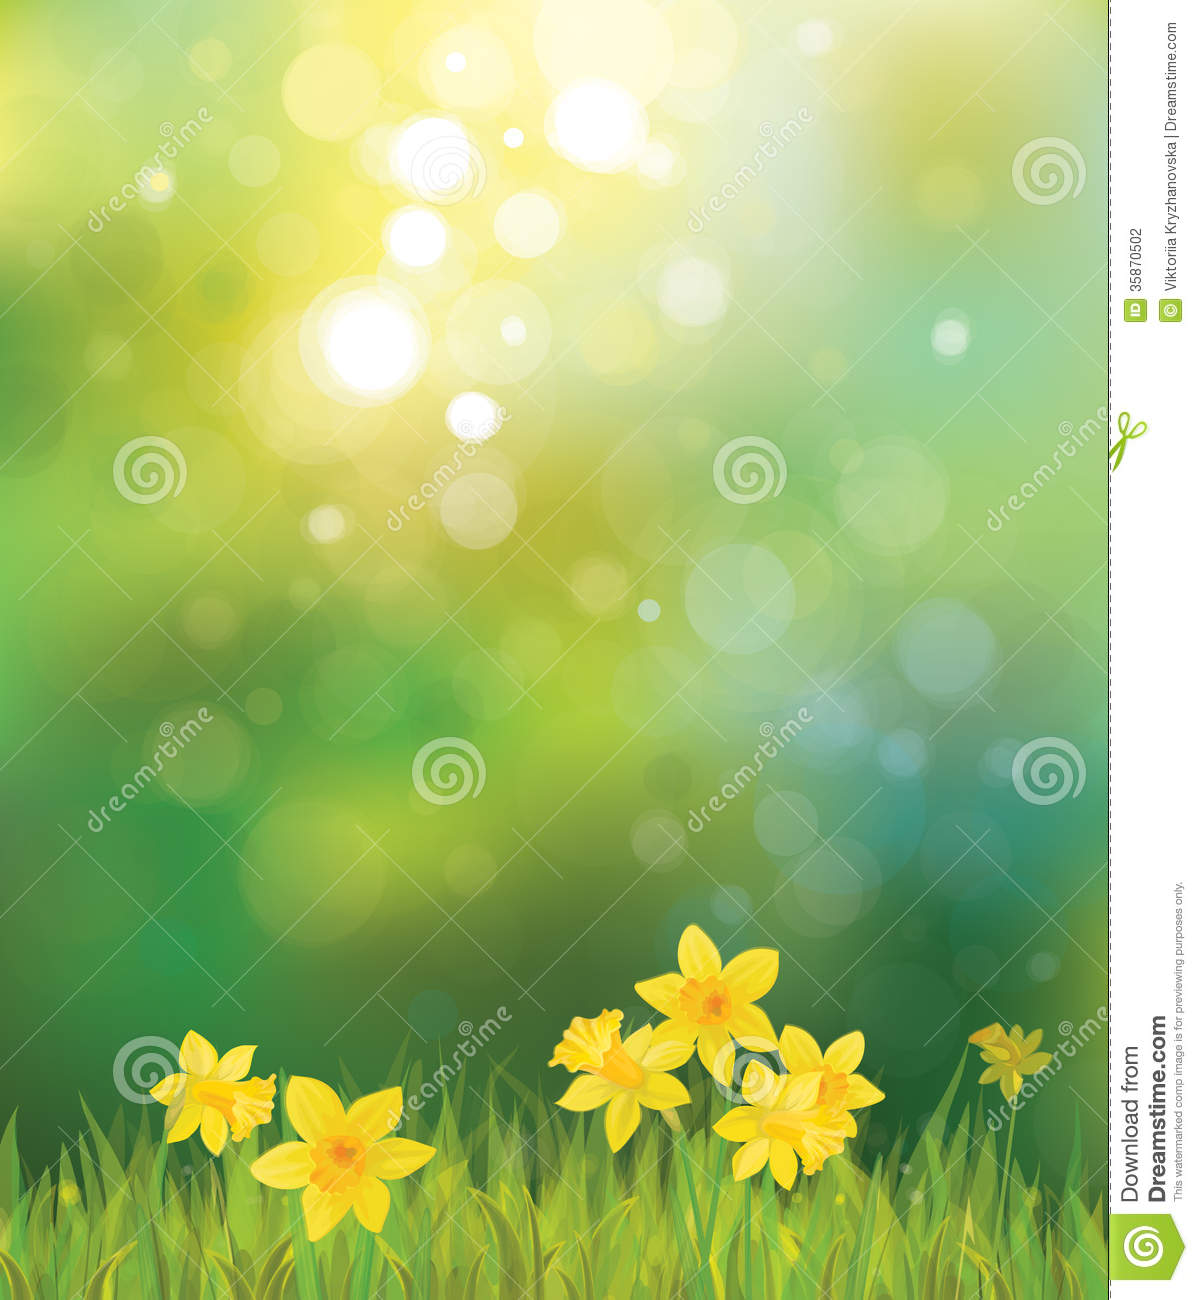 Spring Flower With Green Background Vector 02 Free Download: Vector Of Daffodil Flowers On Spring Background. Stock